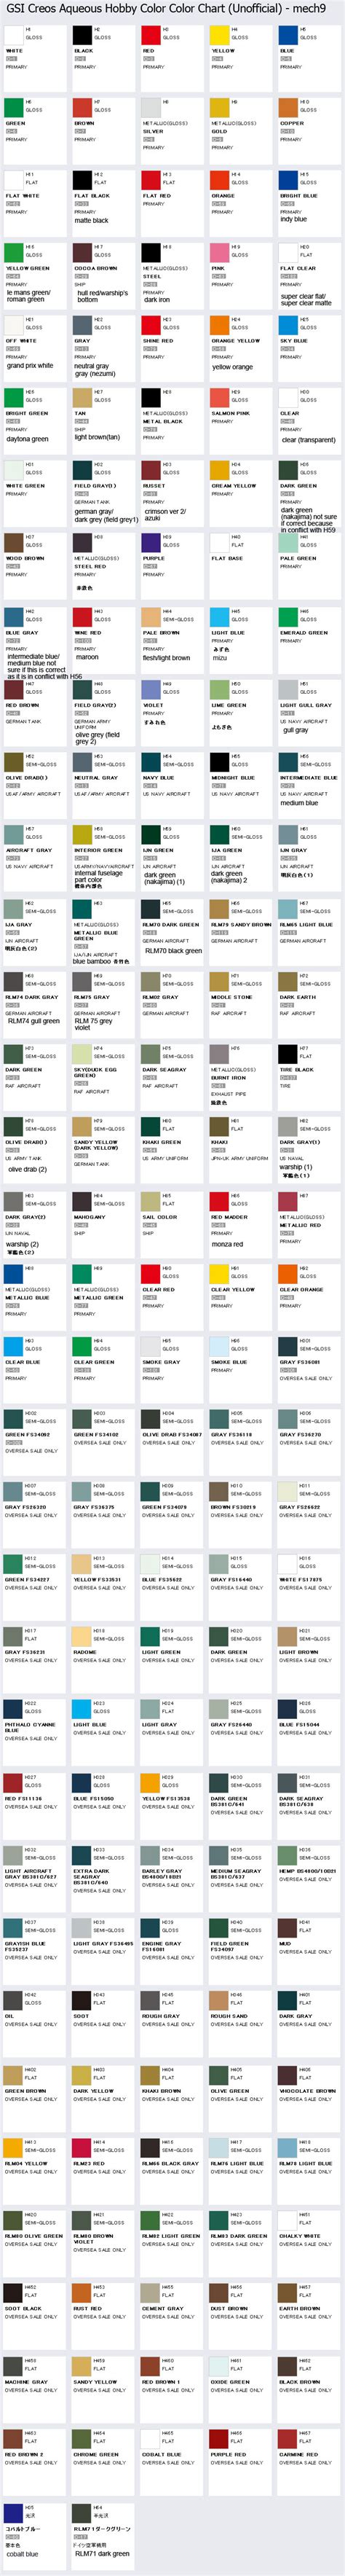 28 paint color conversion chart by brand mech9 translated model kit manuals